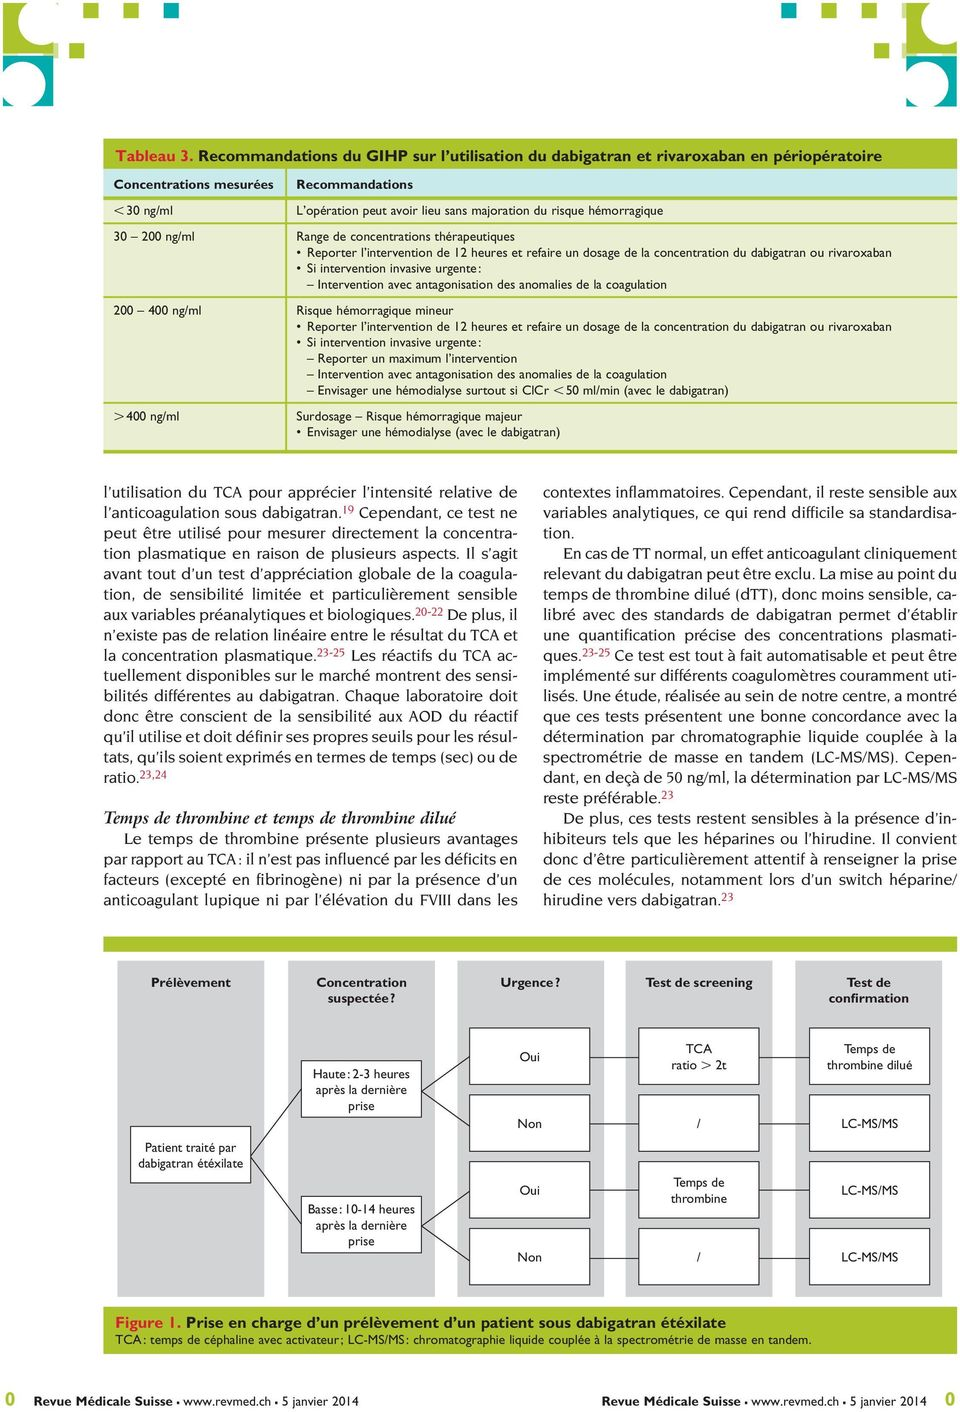 hémorragique 30 200 ng/ml Range de concentrations thérapeutiques Reporter l intervention de 12 heures et refaire un dosage de la concentration du dabigatran ou rivaroxaban Si intervention invasive